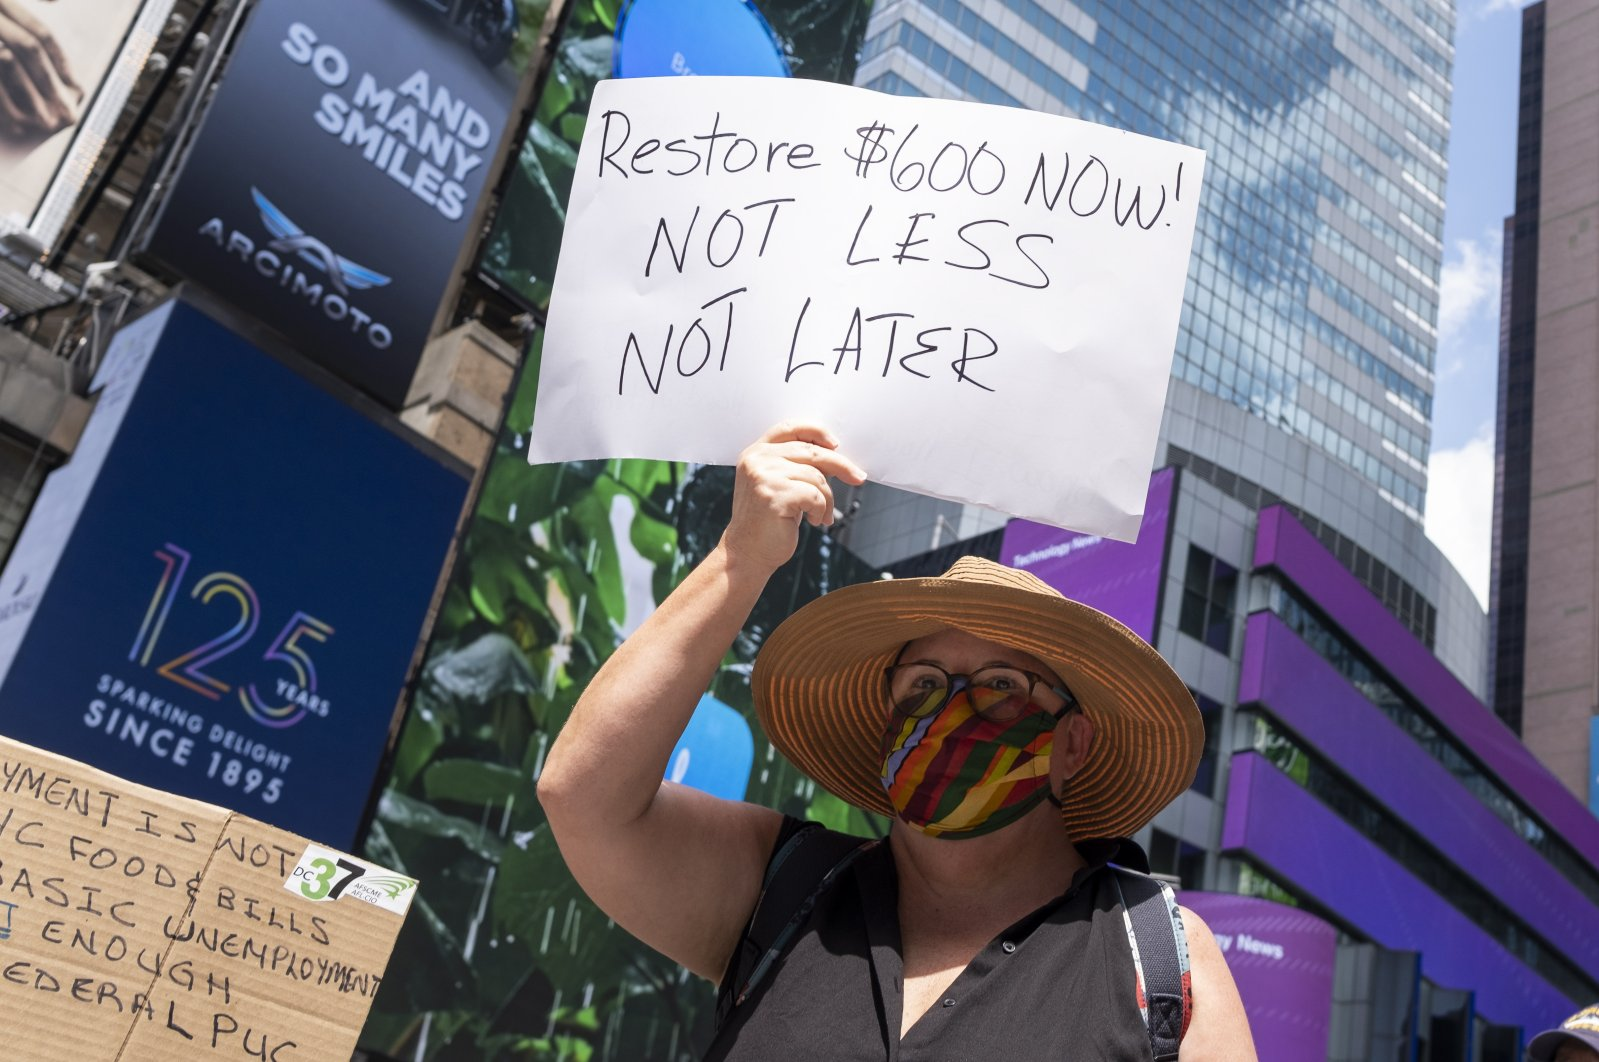 People gather for a rally calling on the U.S. Congress to pass new legislation extending now-expired unemployment benefits to people that are being economically affected by the coronavirus pandemic, in New York, Aug. 5, 2020. (EPA Photo)